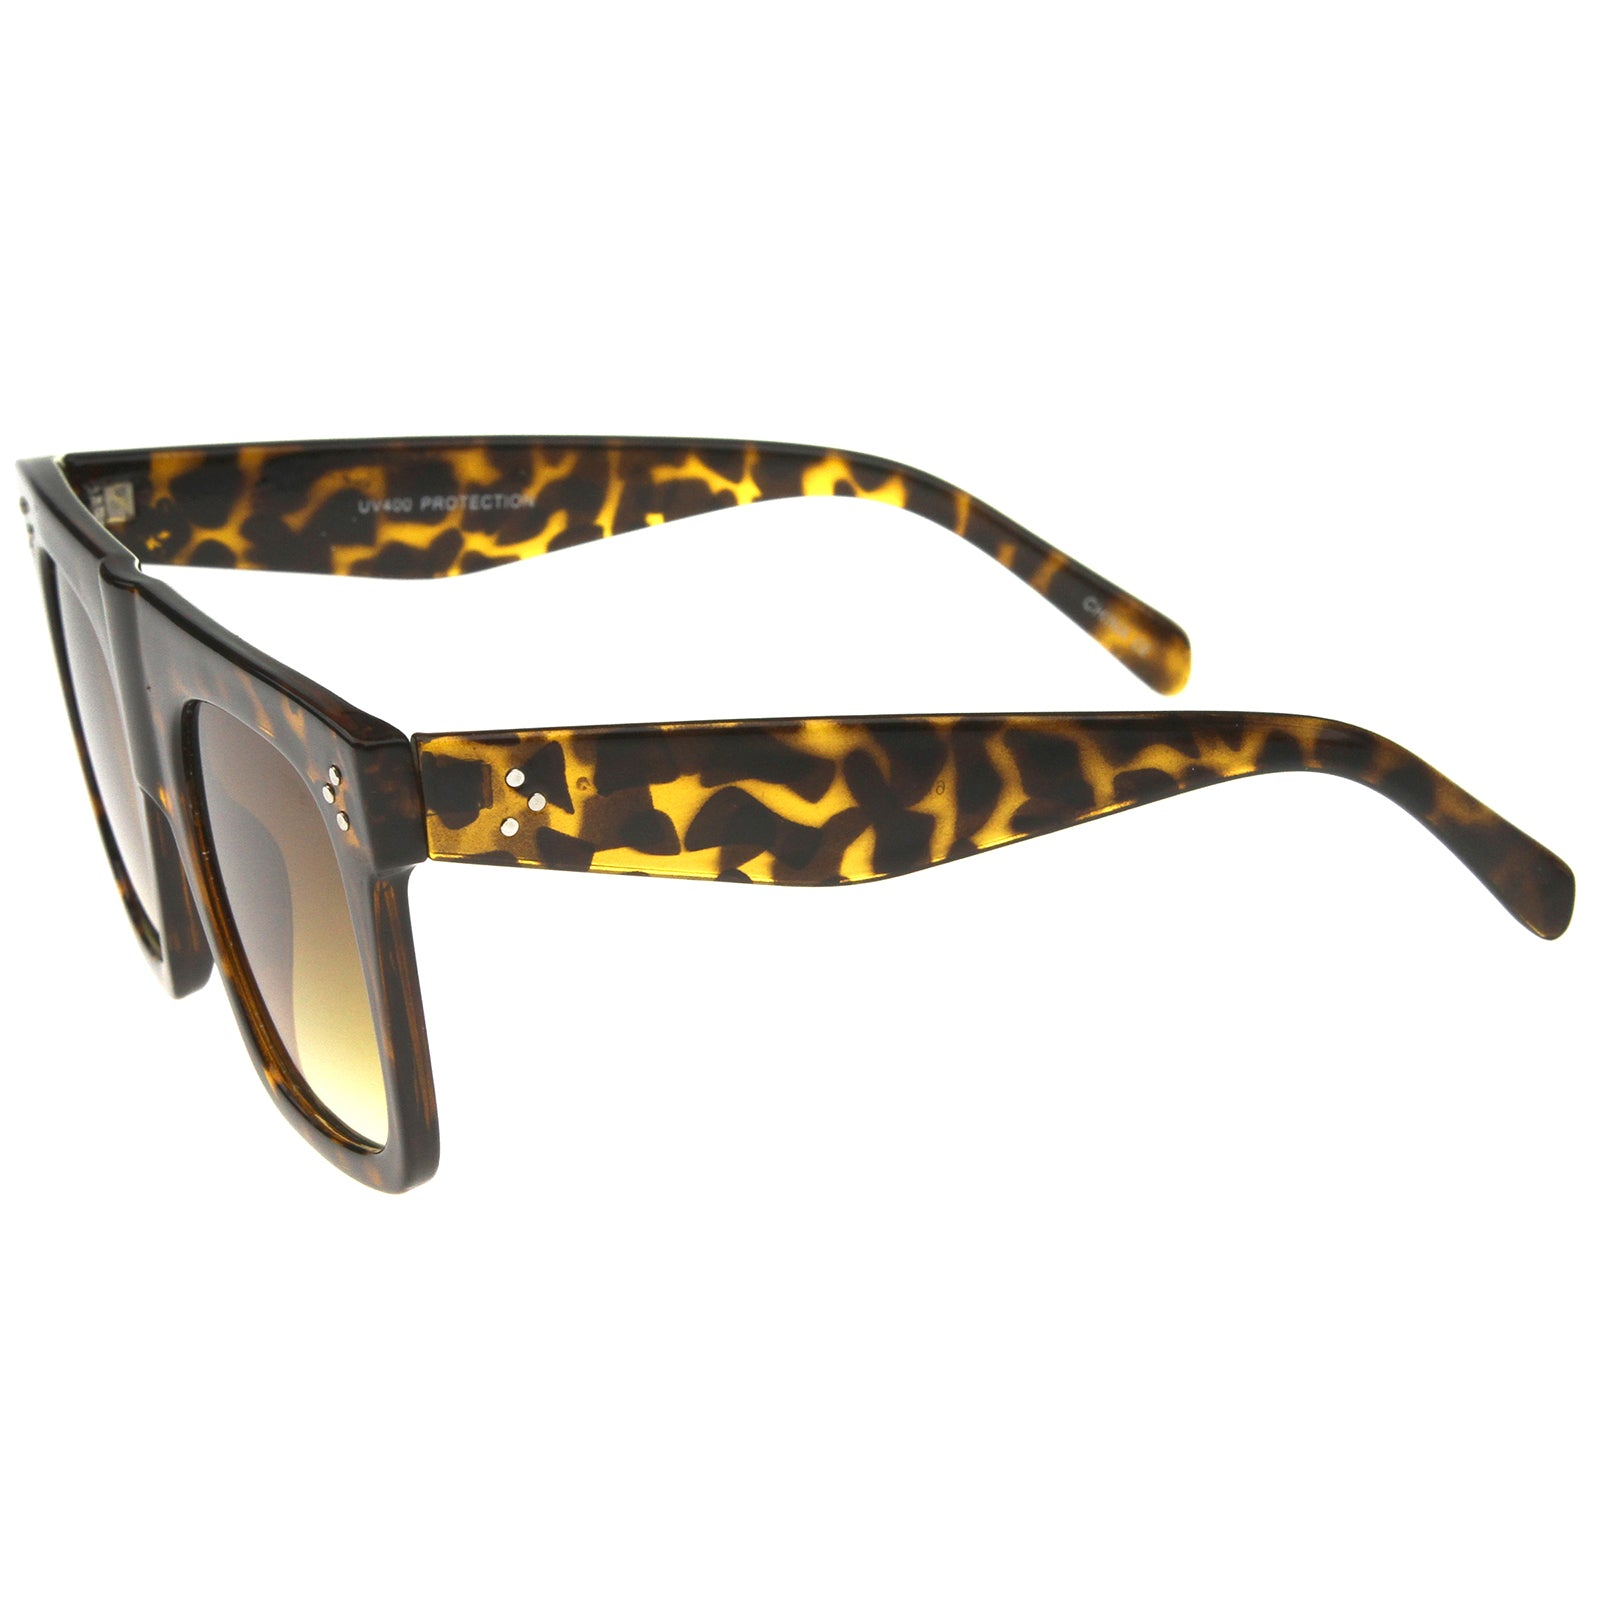 Modern Fashion Bold Flat Top Square Horn Rimmed Sunglasses 50mm - sunglass.la - 3